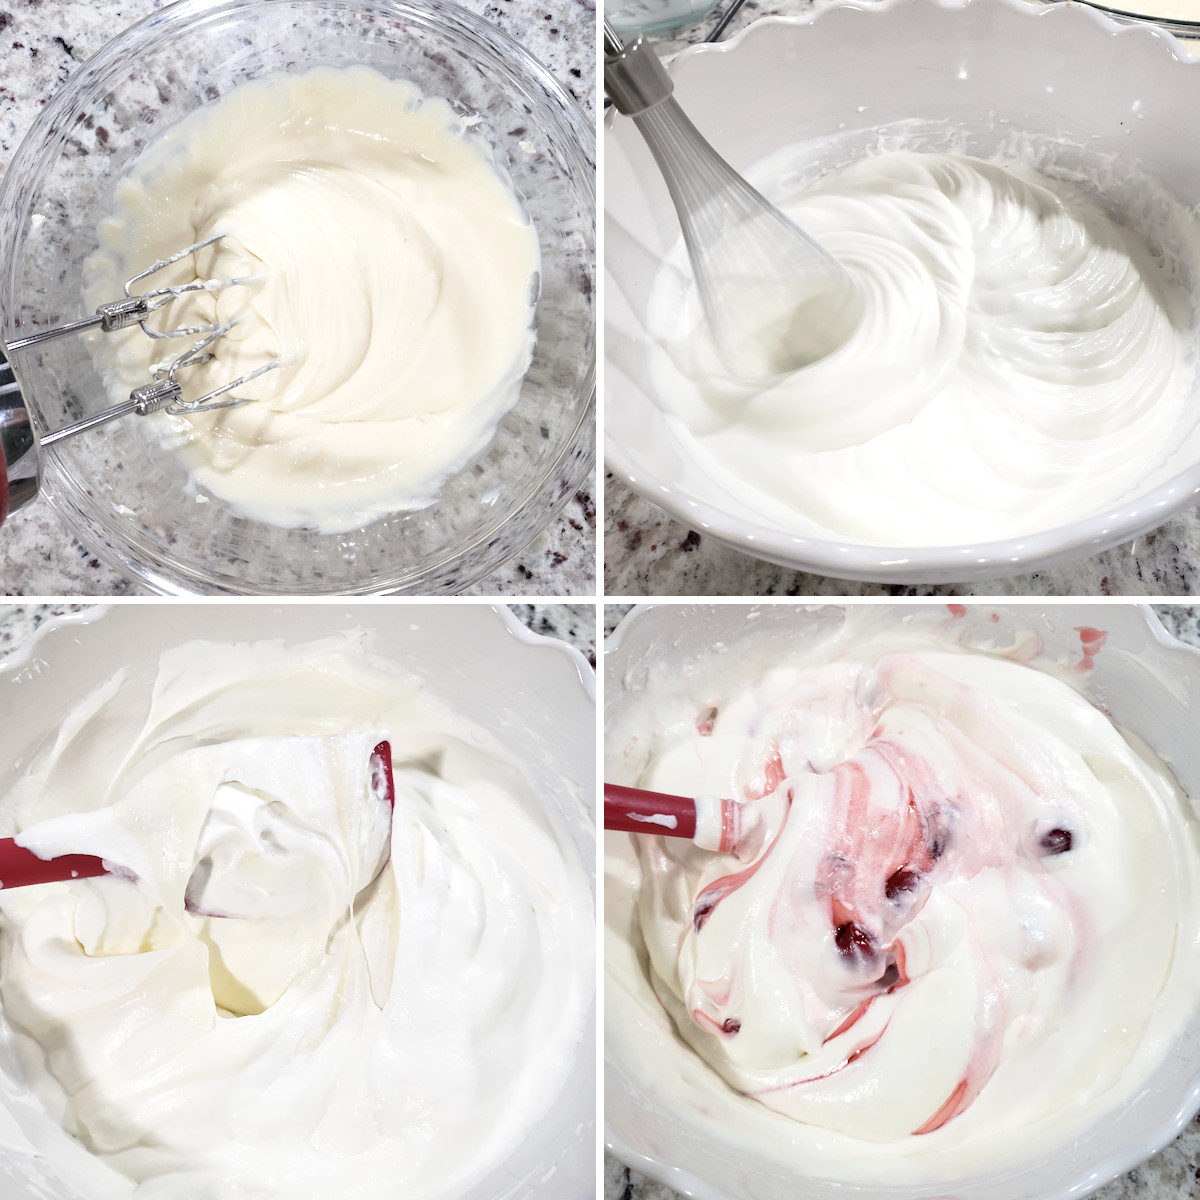 Mixing no churn ice cream ingredients together.